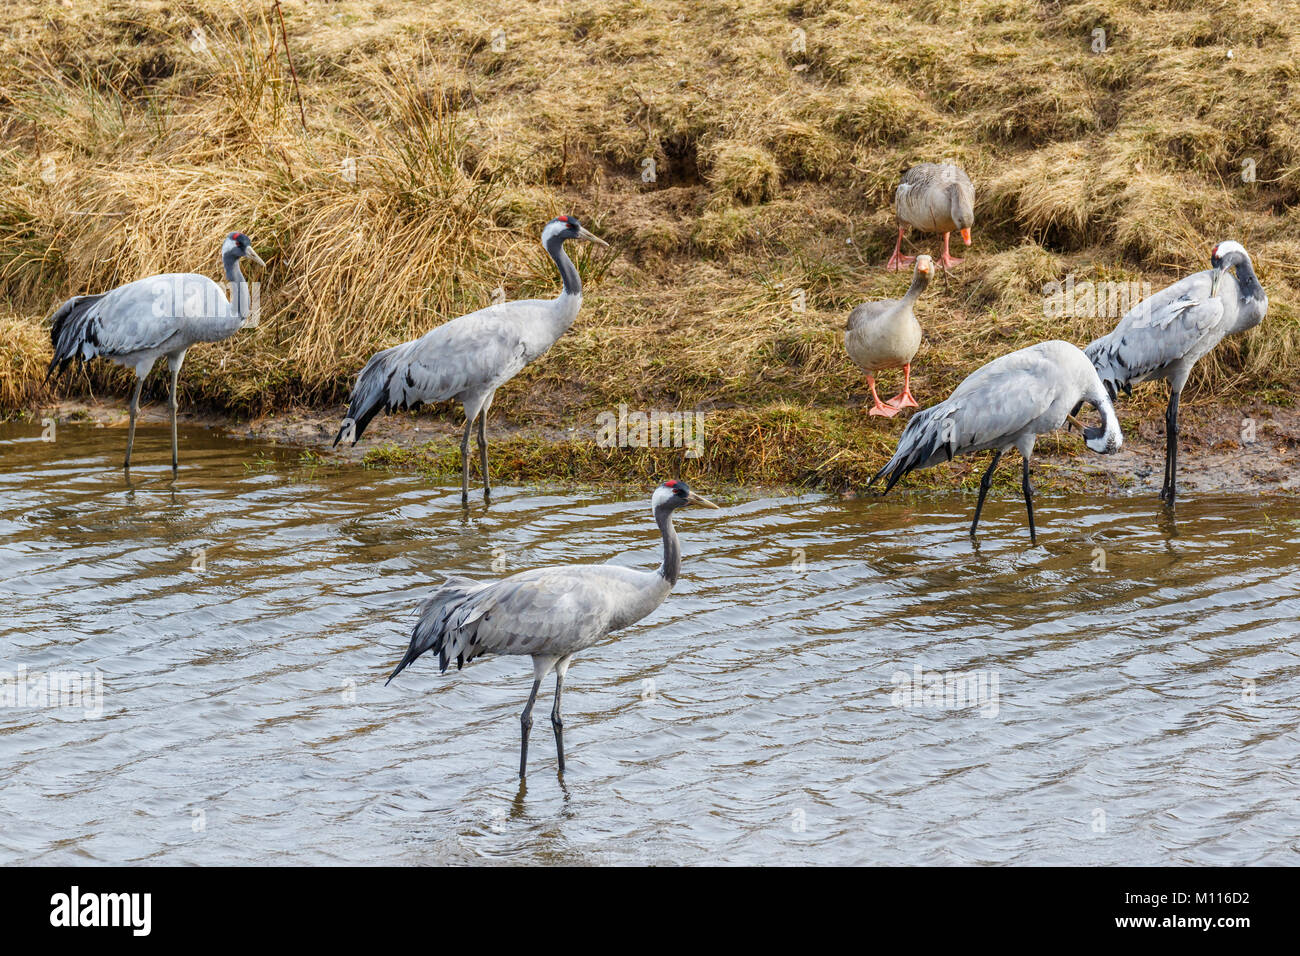 Cranes standing in the water at the beach Stock Photo